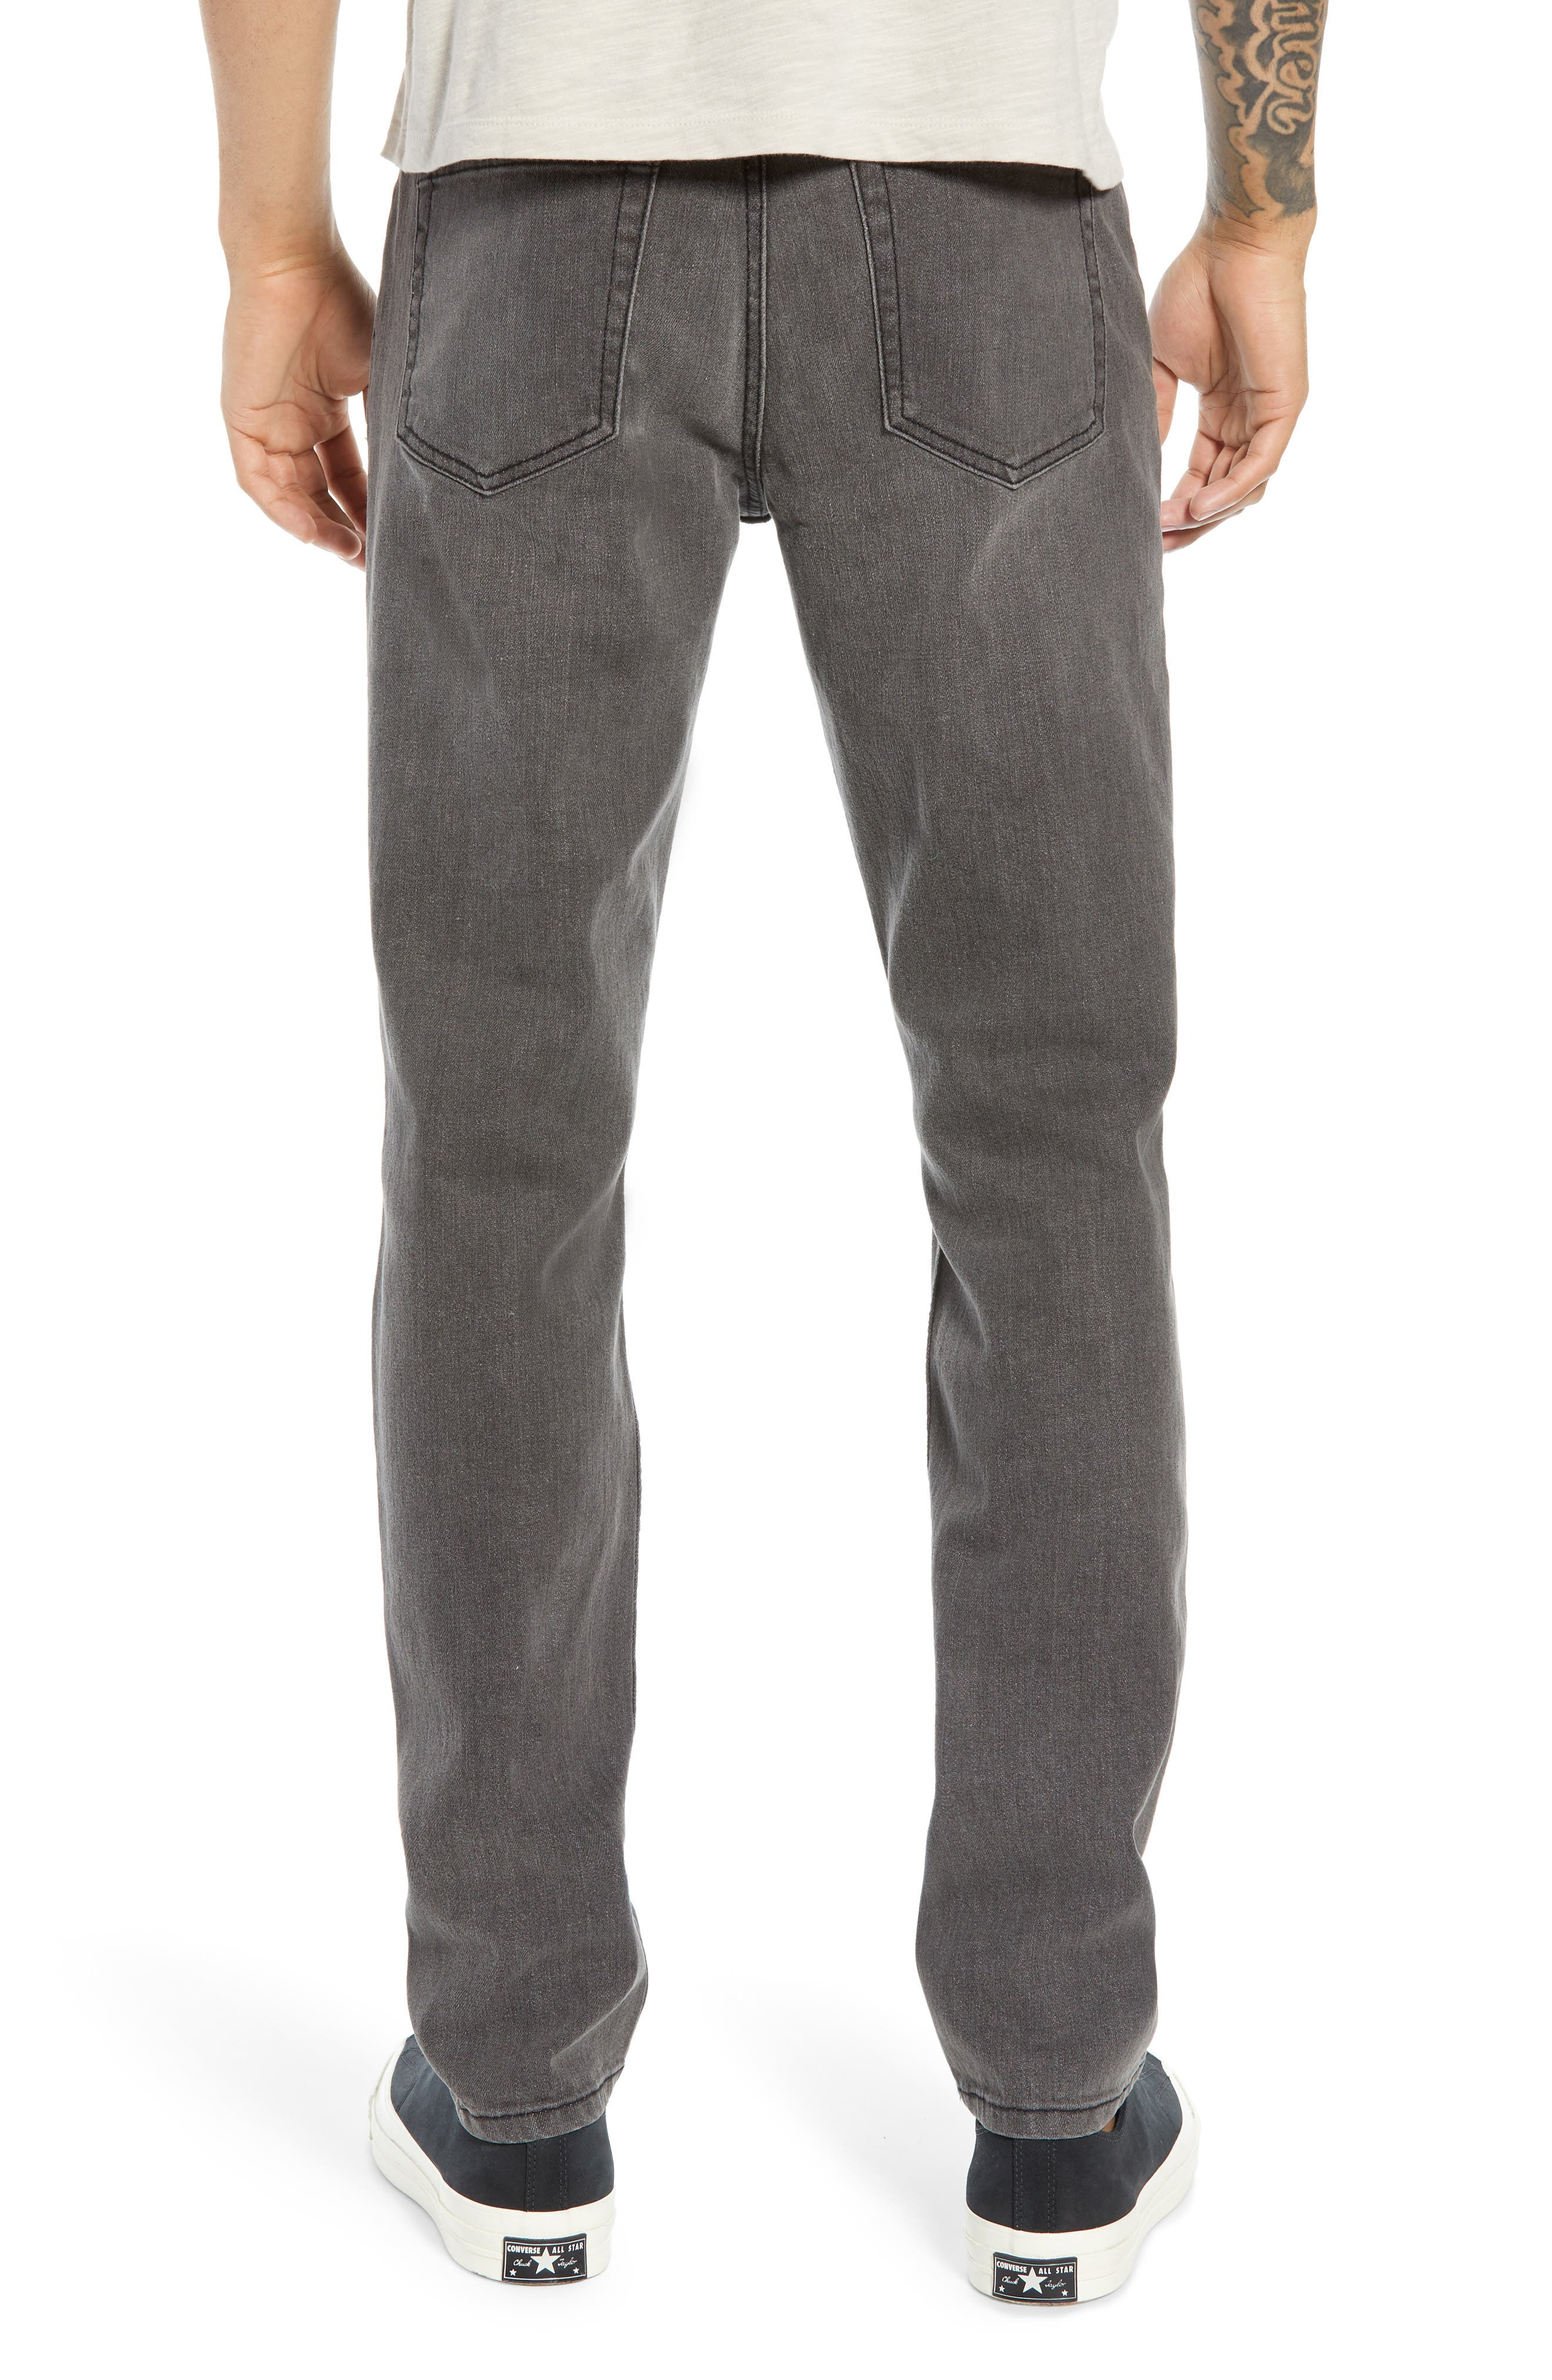 THE RAIL,                             Ripped Skinny Jeans,                             Alternate thumbnail 2, color,                             GREY CHRIS WASH